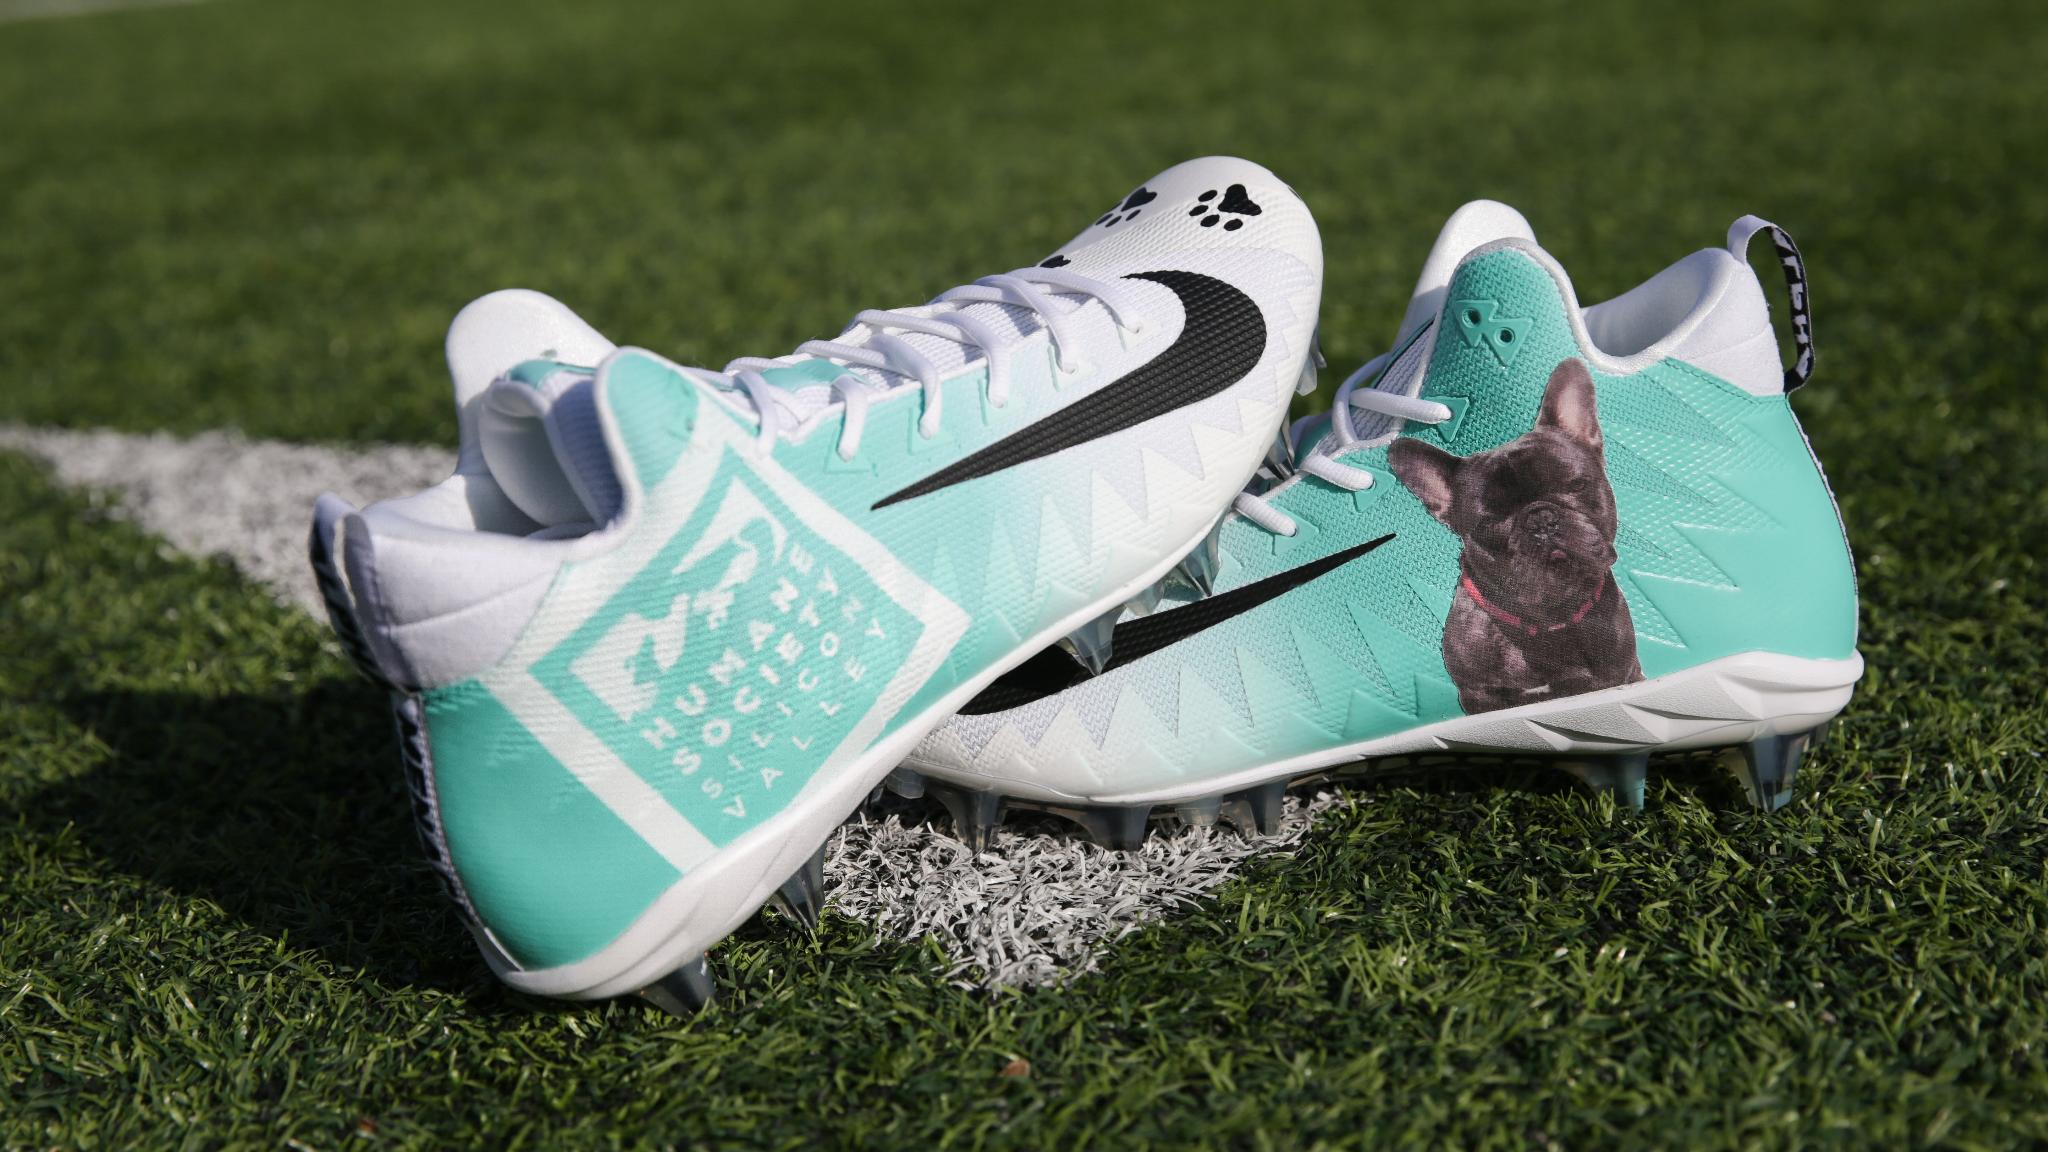 Nike Air Max ��  Bid on @elguapo's cleats benefitting @hssv! https://t.co/g0MtpEh4Rf #MyCauseMyCleats https://t.co/2dbMoTv3fc